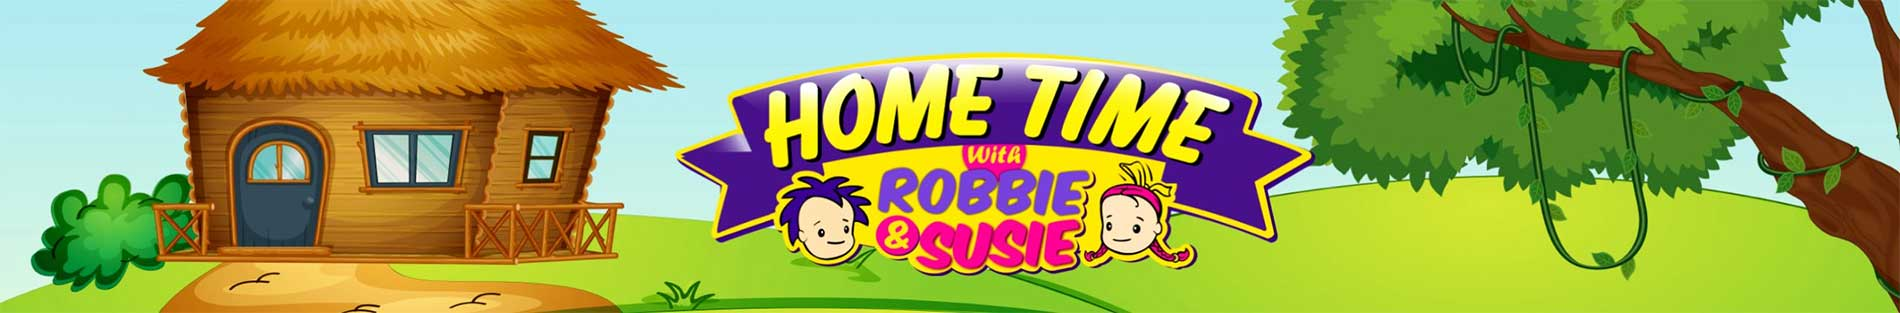 Hometime with Robbie and Susie